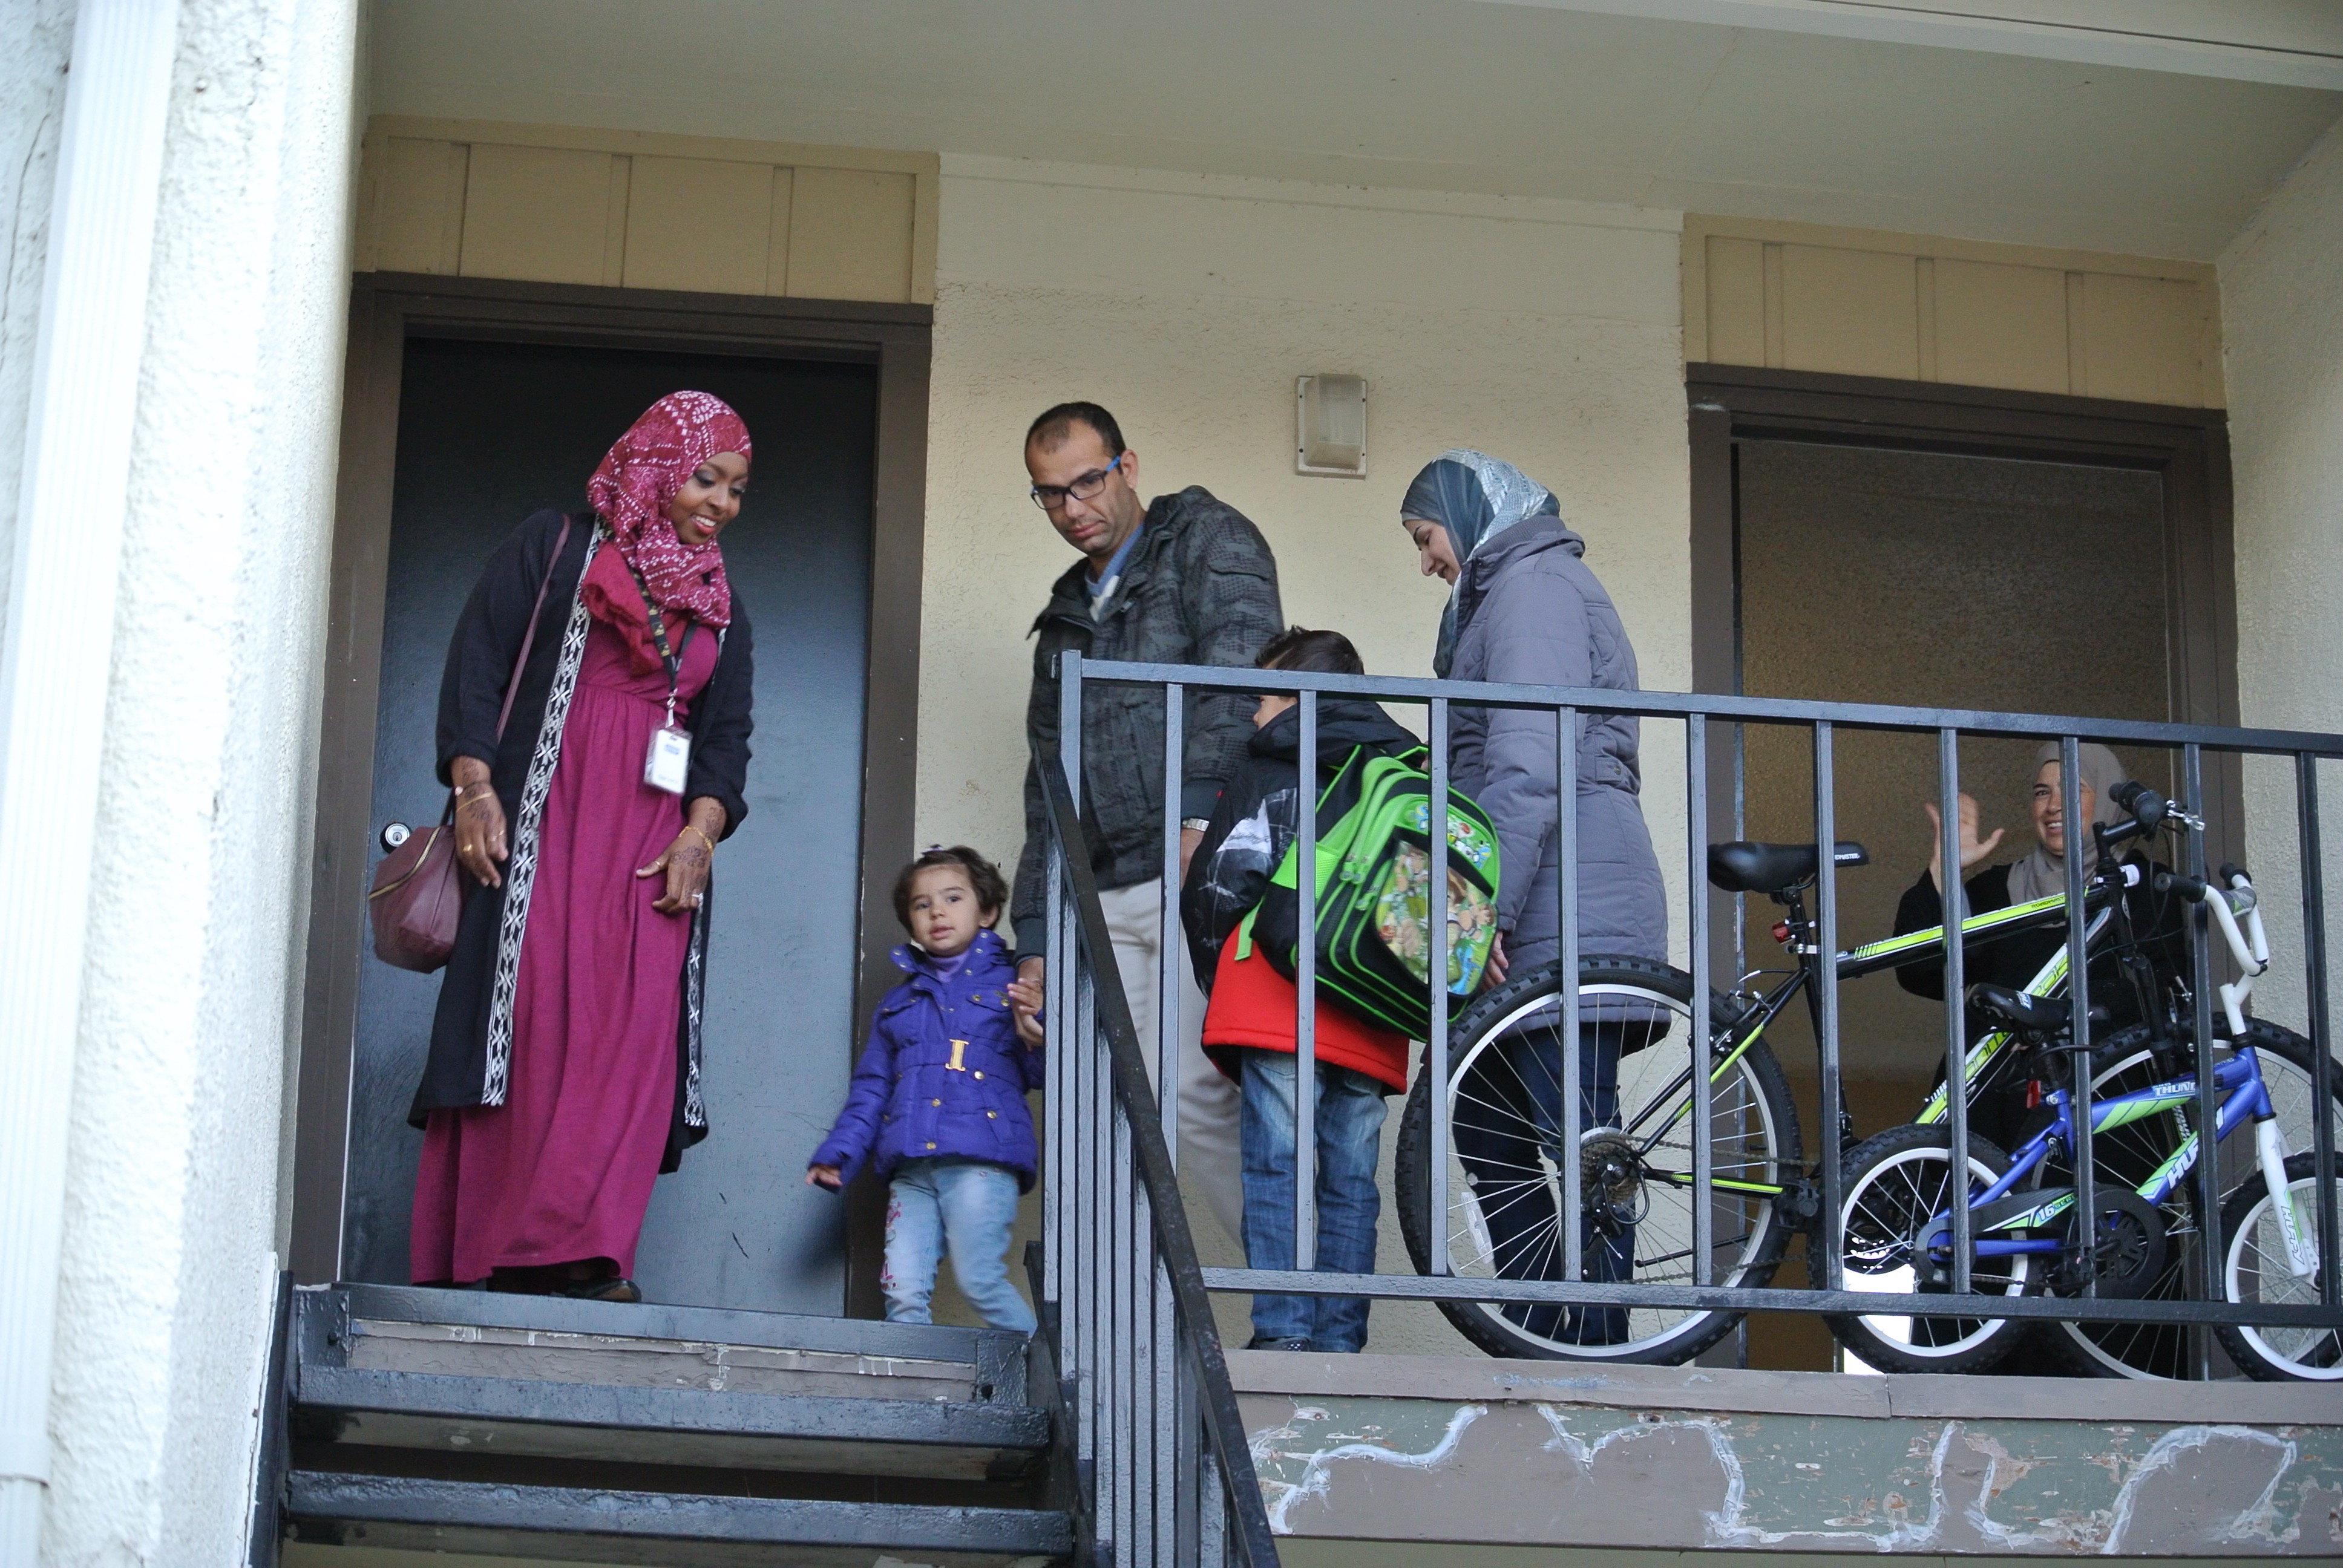 Syrian Refugees In The United States